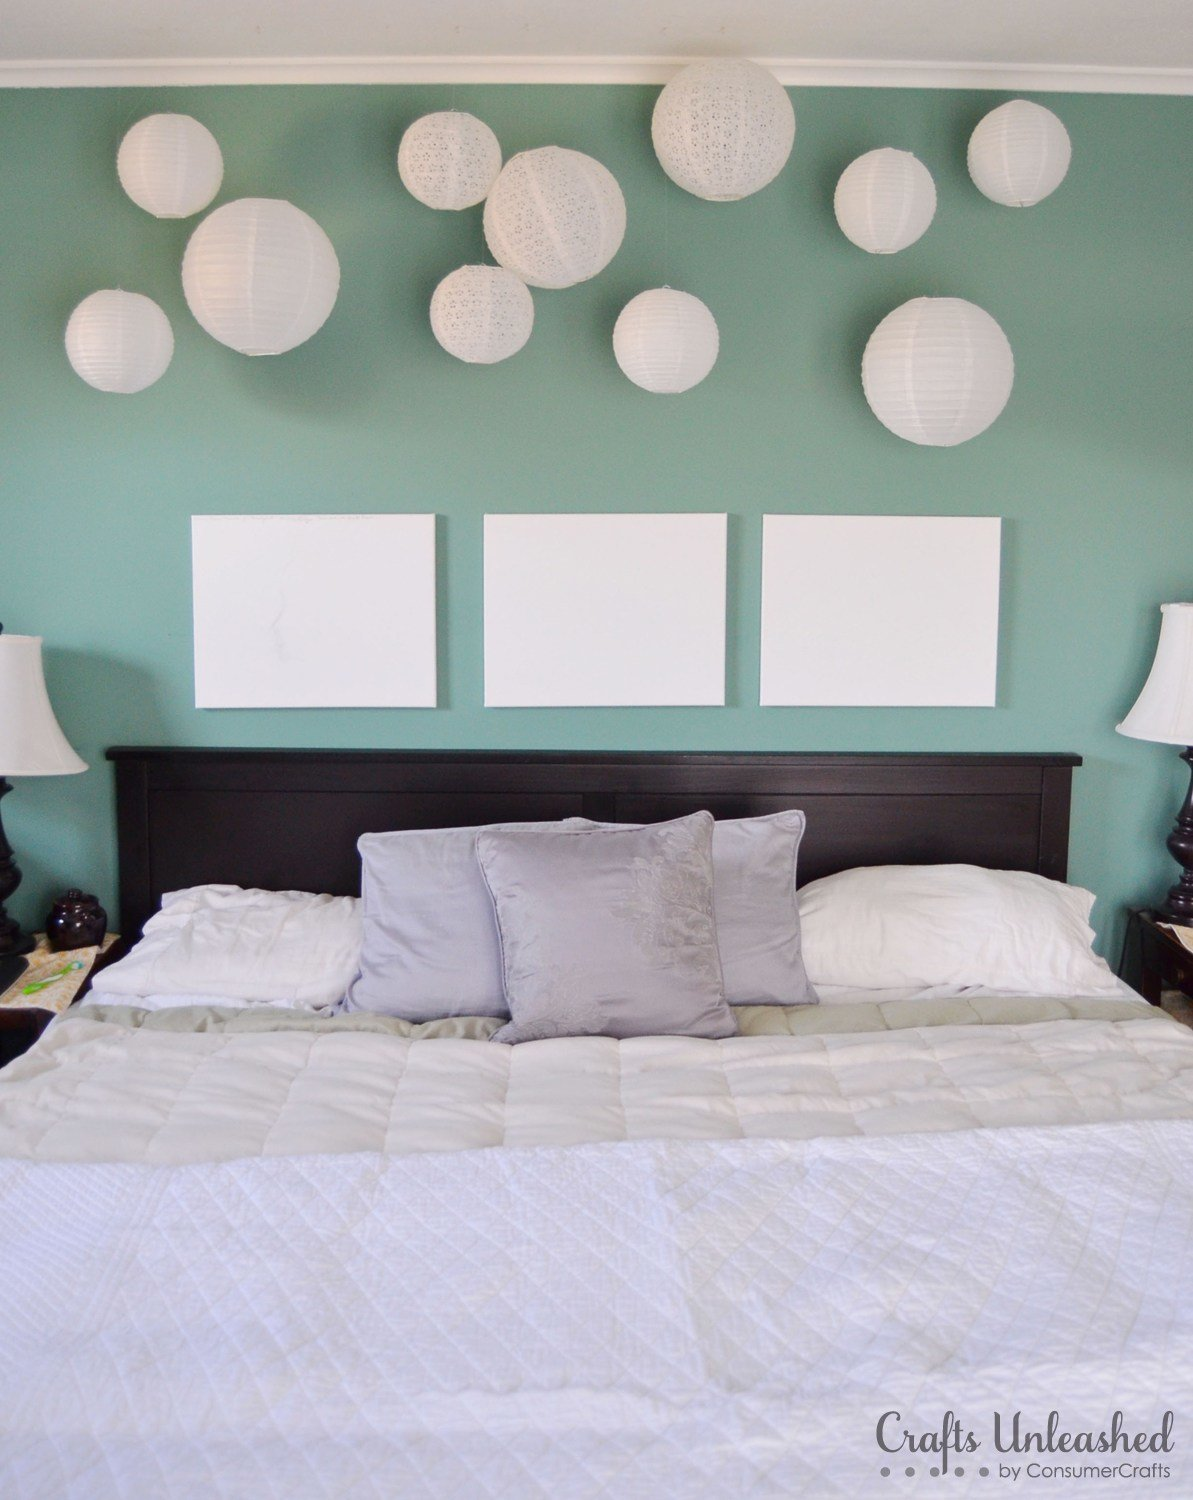 Best Create A Fun Whimsical Wall Installation With Paper Lanterns With Pictures